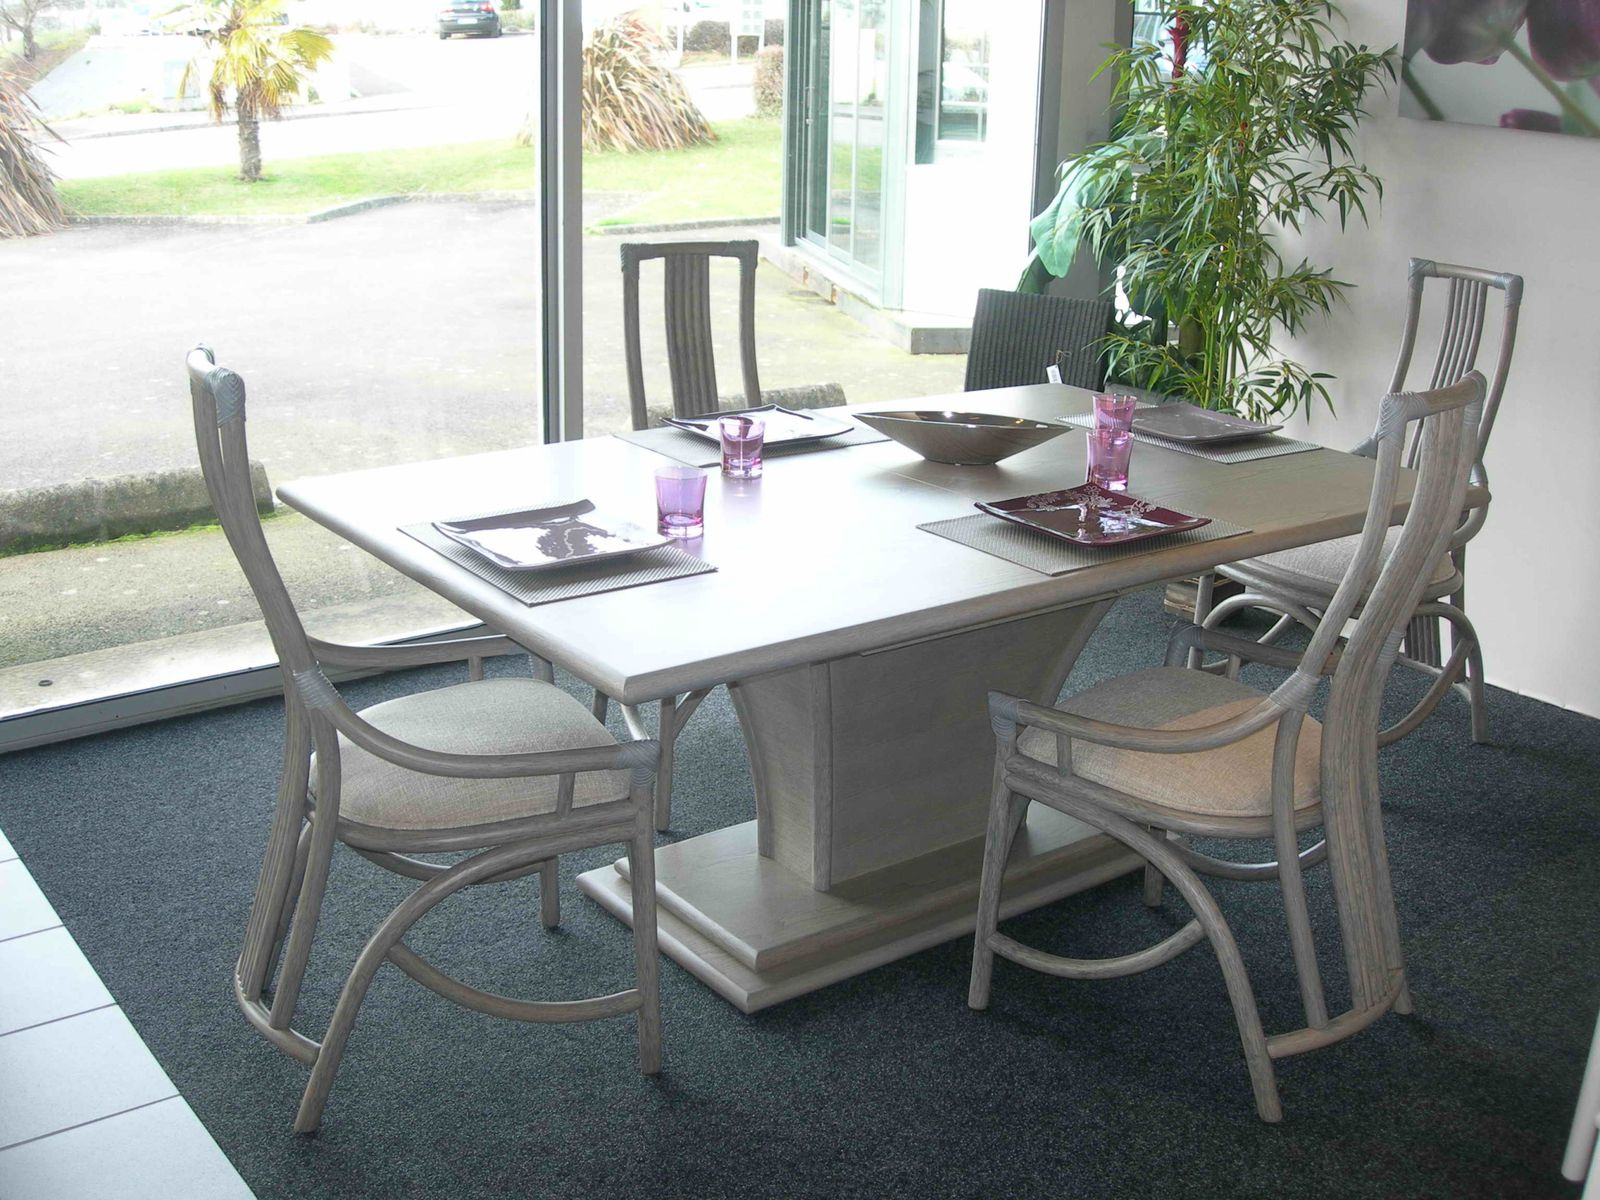 Album sejours exodia home design tables ceramique for Meubles rotin pour veranda